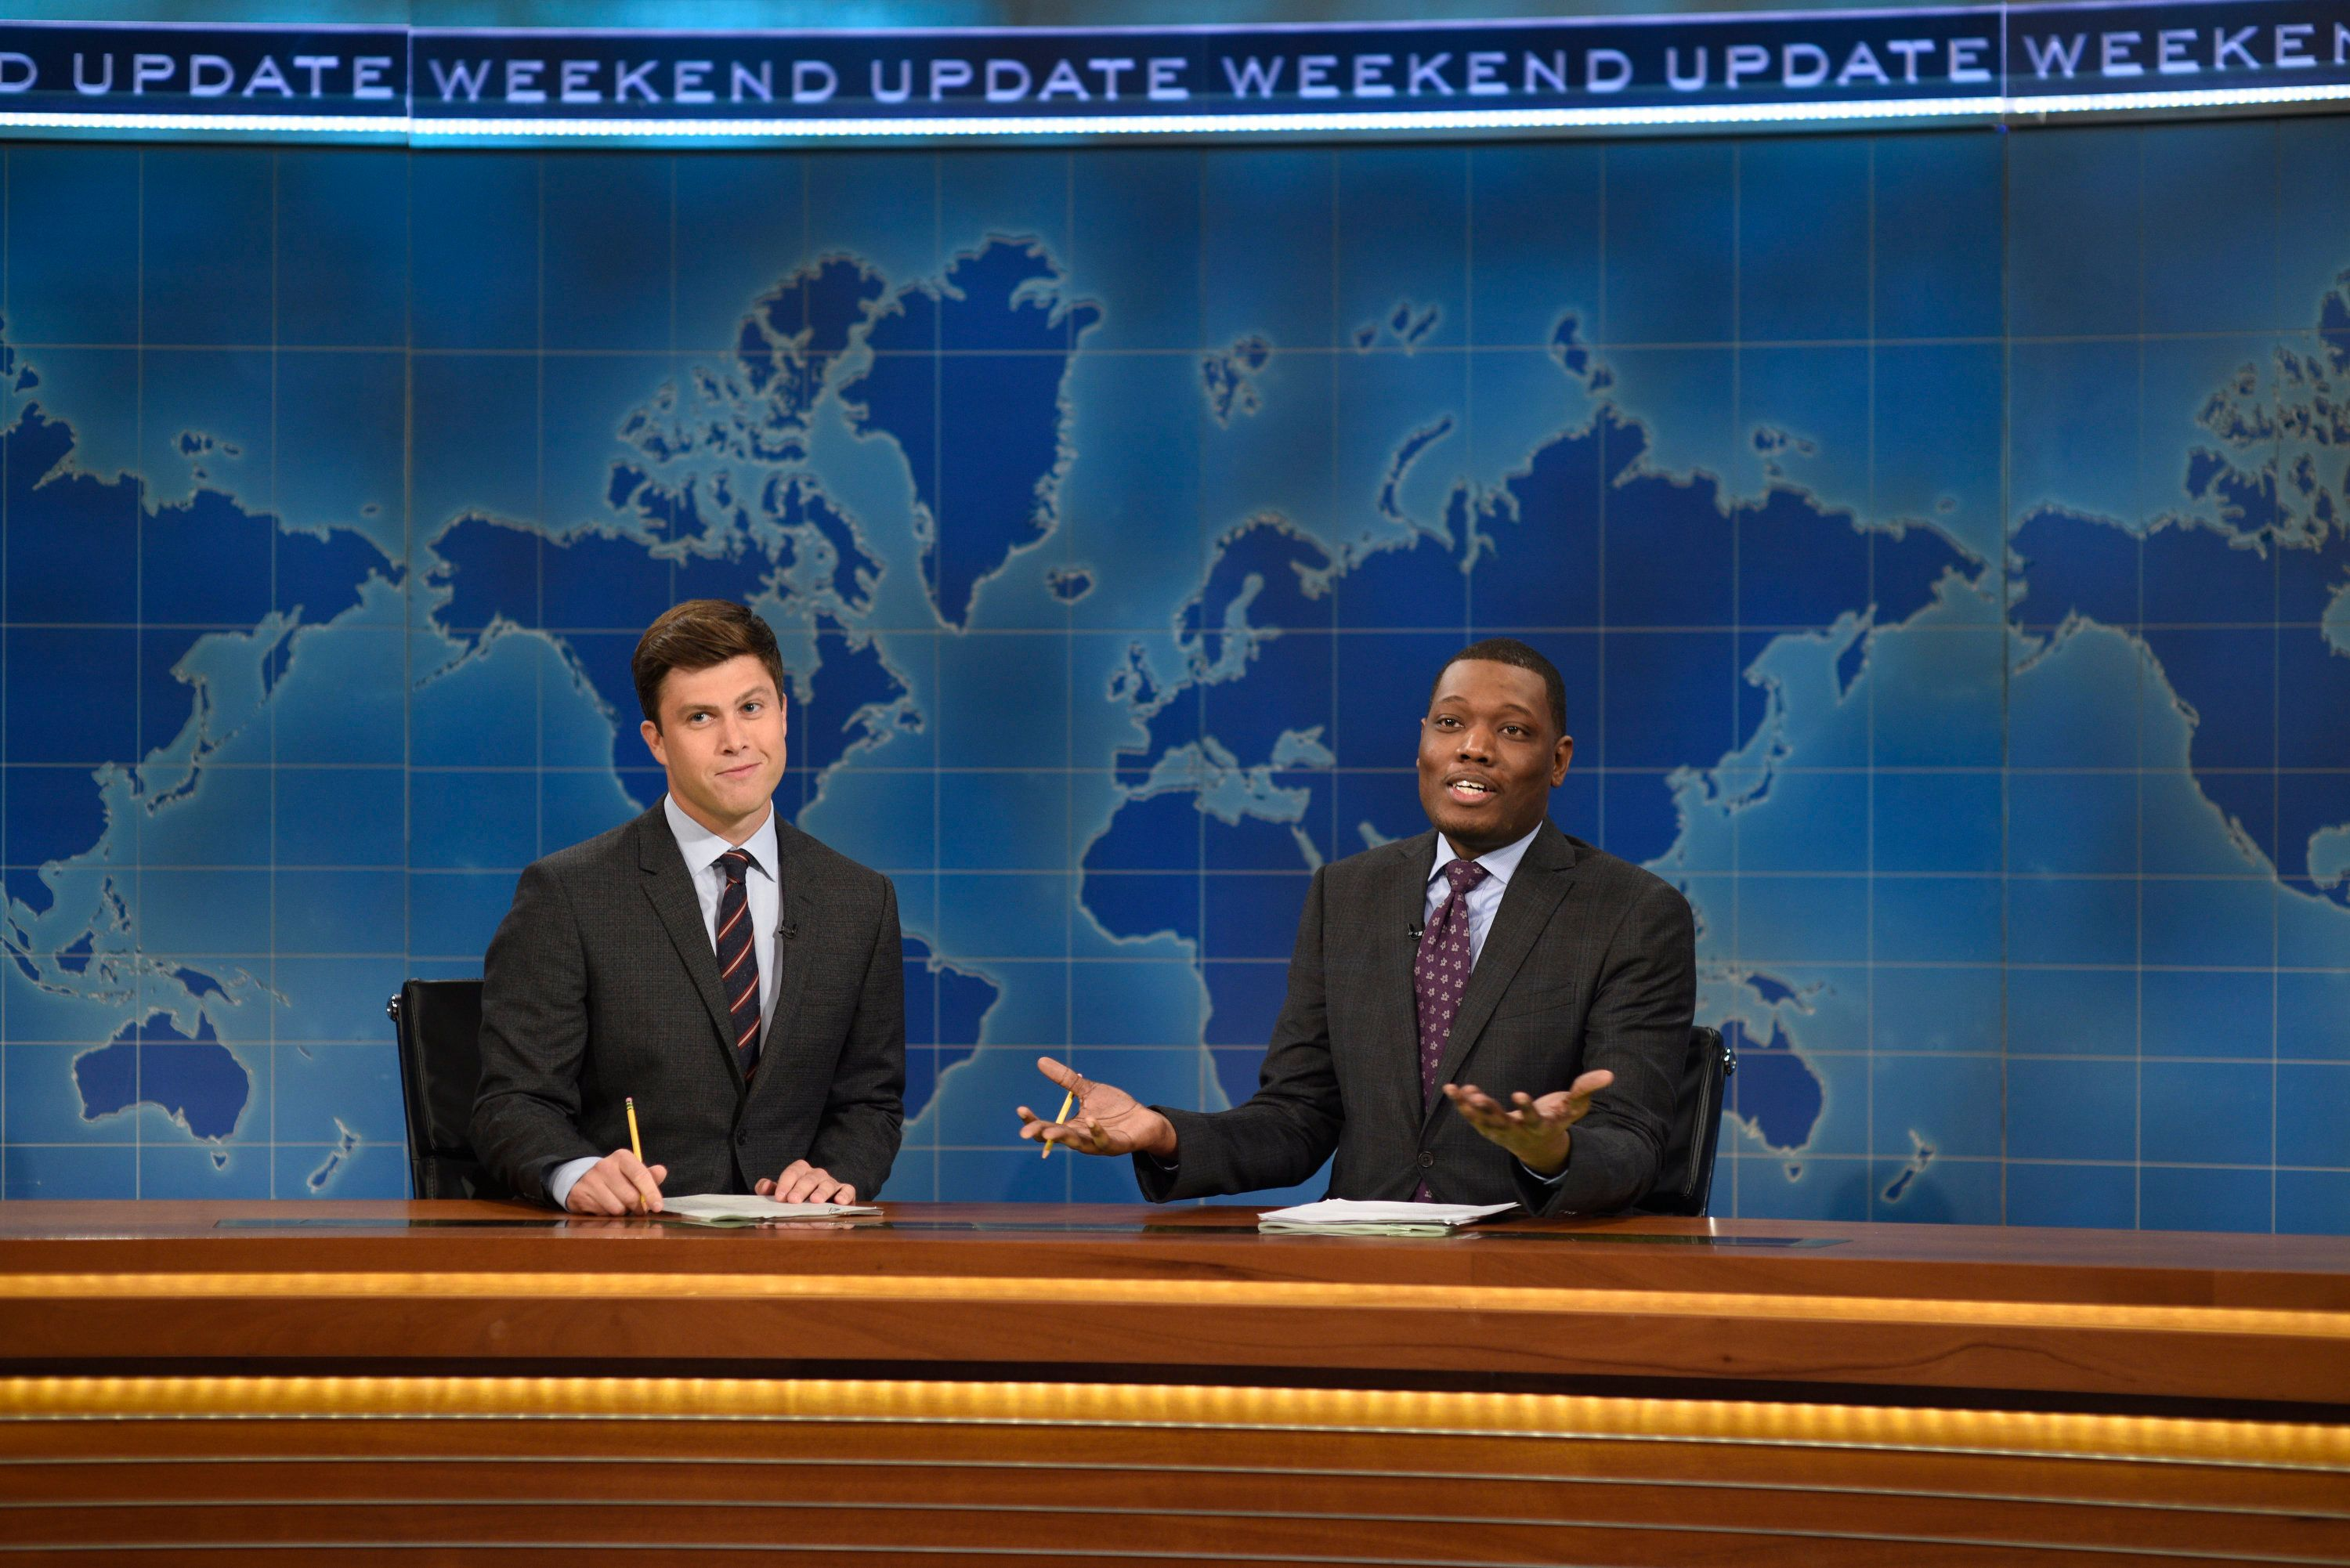 SATURDAY NIGHT LIVE -- 'Margot Robbie' Episode 1705 -- Pictured: (l-r) Colin Jost and Michael Che during Weekend Update on October 1, 2016 -- (Photo by: Will Heath/NBC/NBCU Photo Bank via Getty Images)